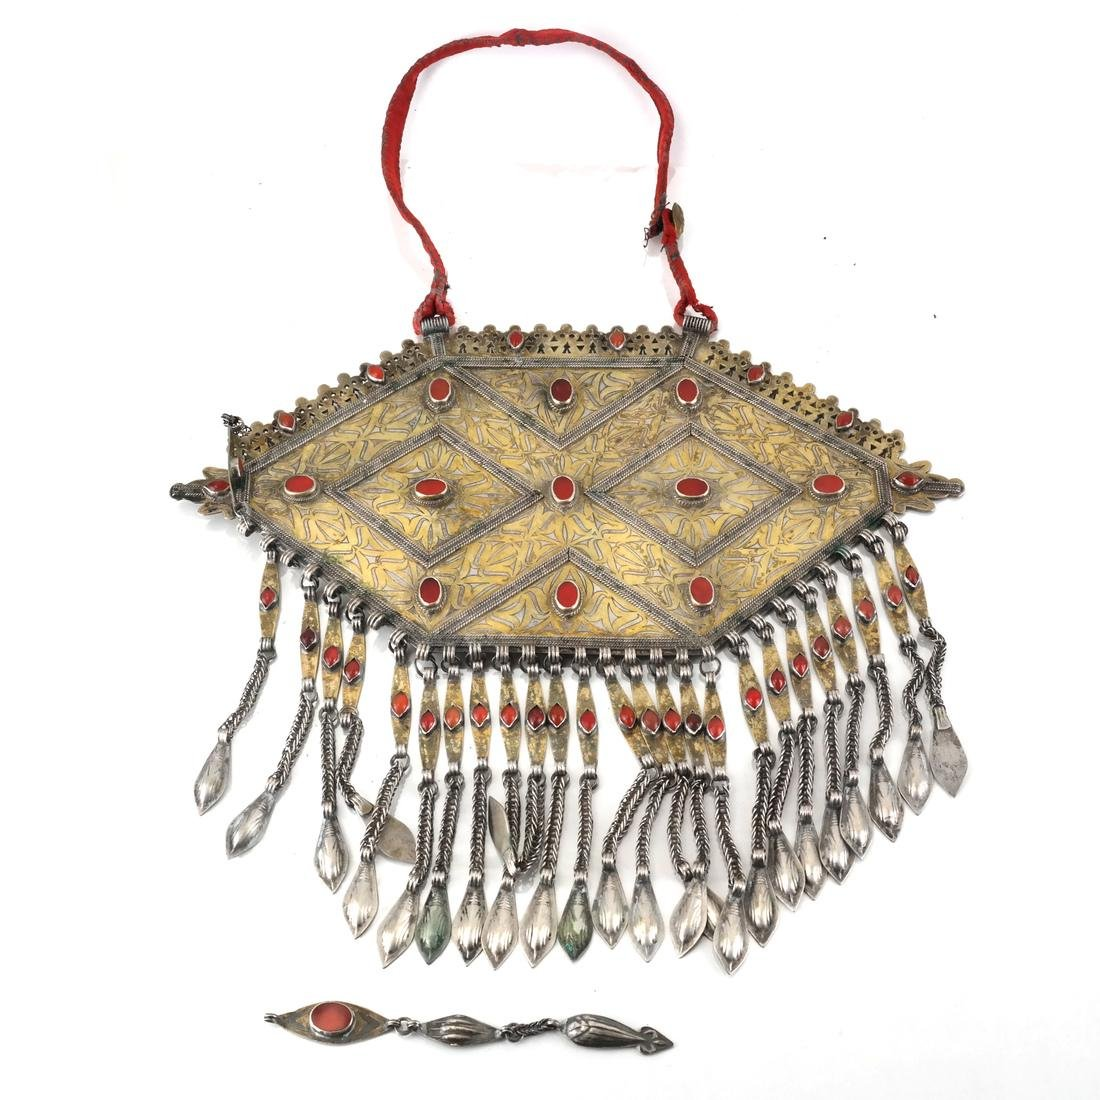 Afghan/Central Asian Antique Jeweled Breastplate